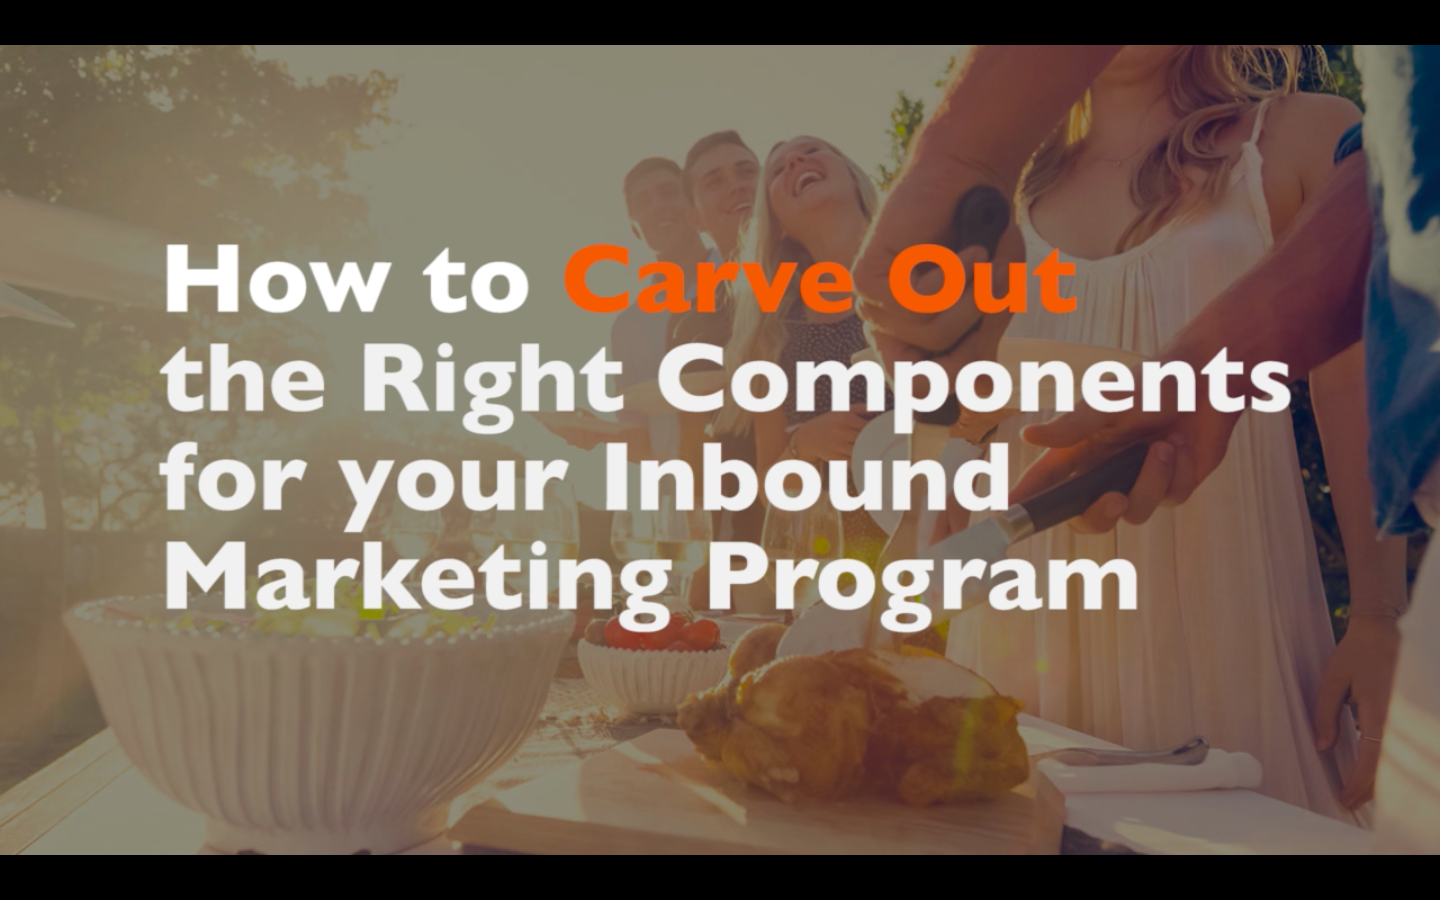 A B2B Digital Marketing Feast, Part 3/5: How to Carve Out the Right Components for Your Inbound Marketing Program